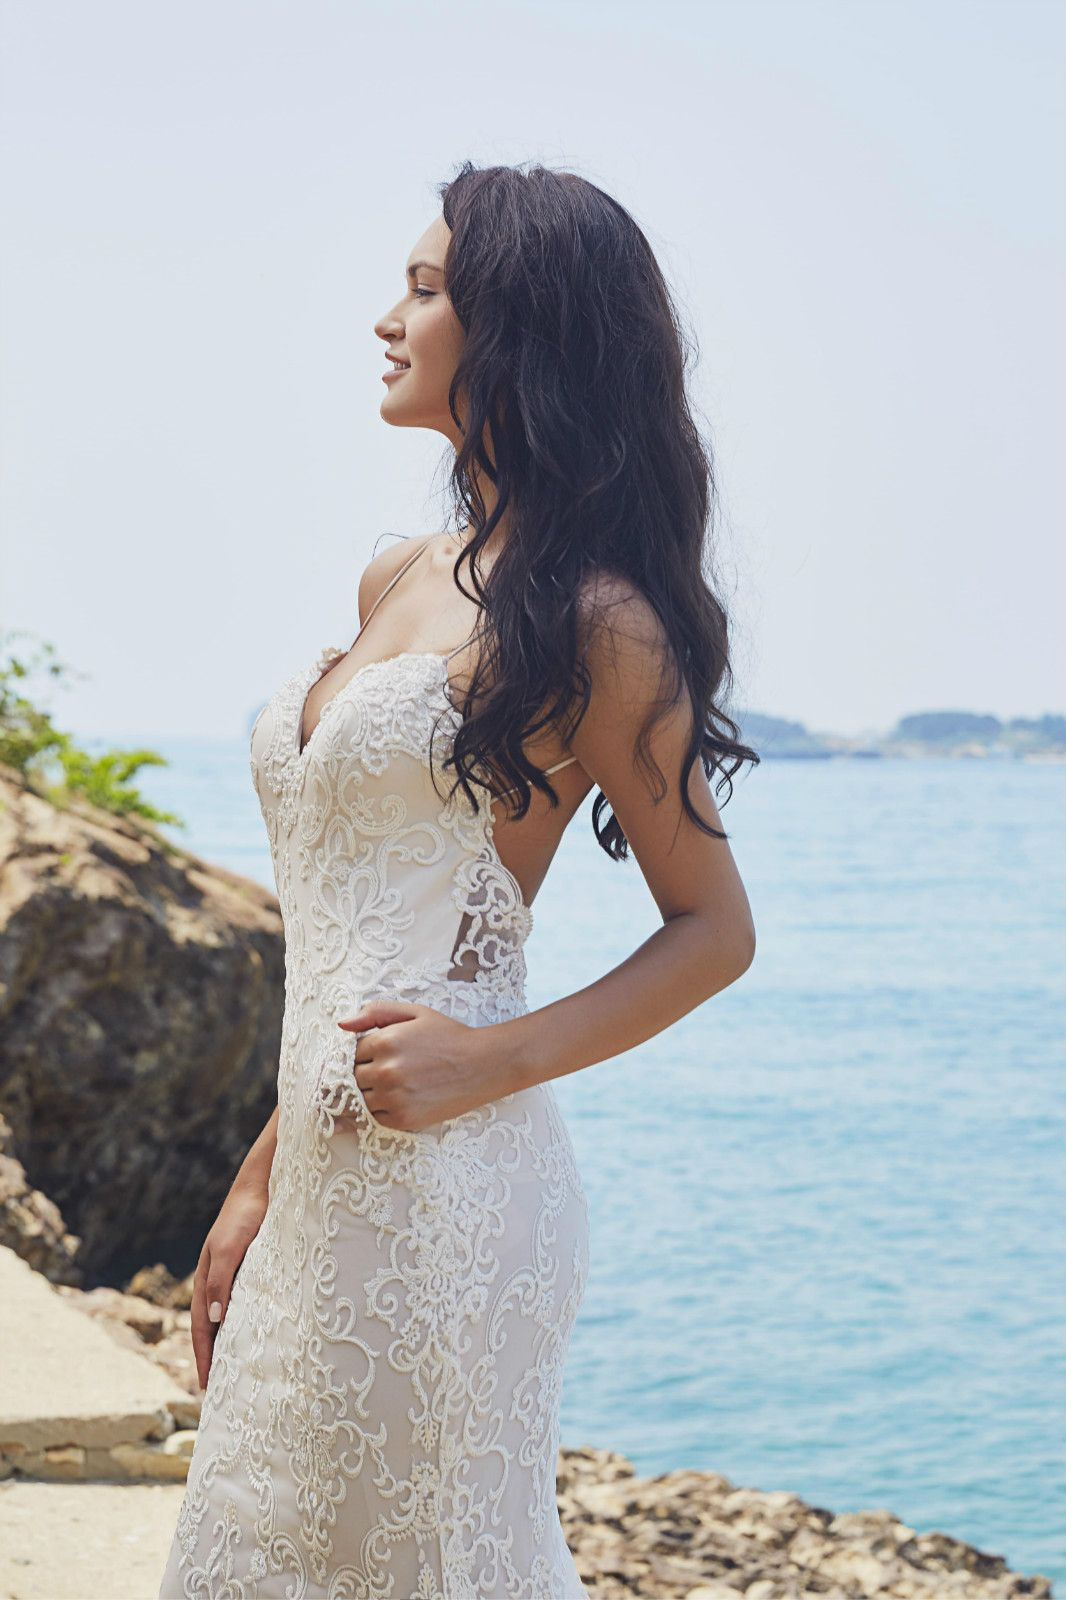 Lennox by Chic Nostalgia will be coming soon to Sincerely, The Bride ...